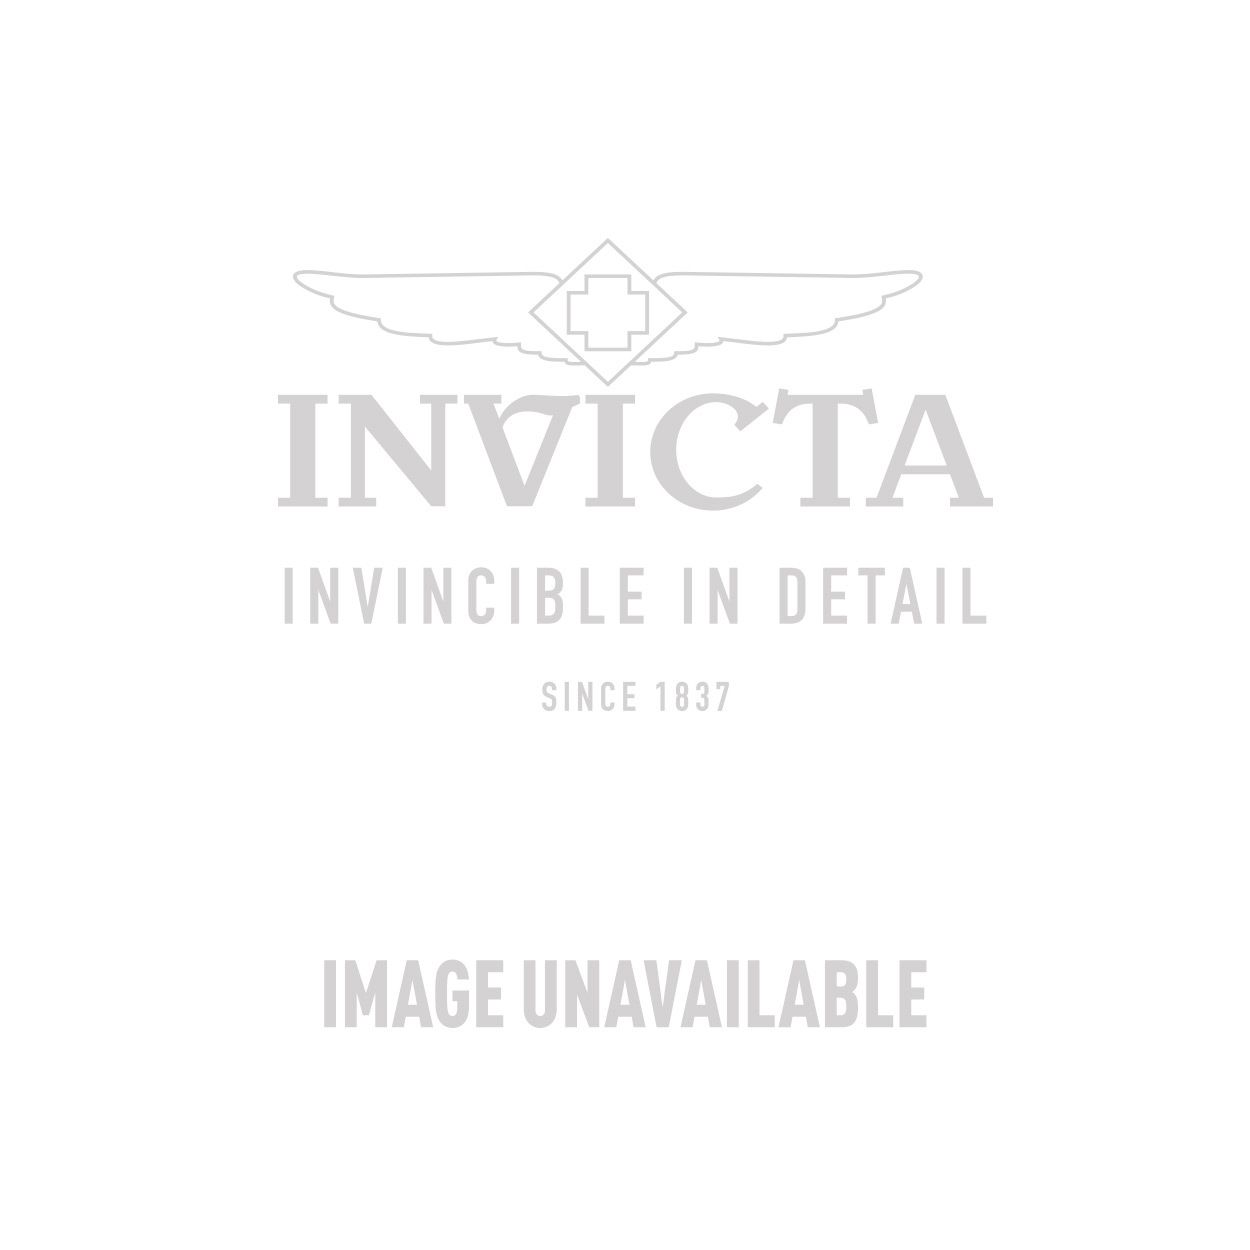 Invicta Specialty Swiss Movement Quartz Watch - Stainless Steel case Stainless Steel band - Model 1974